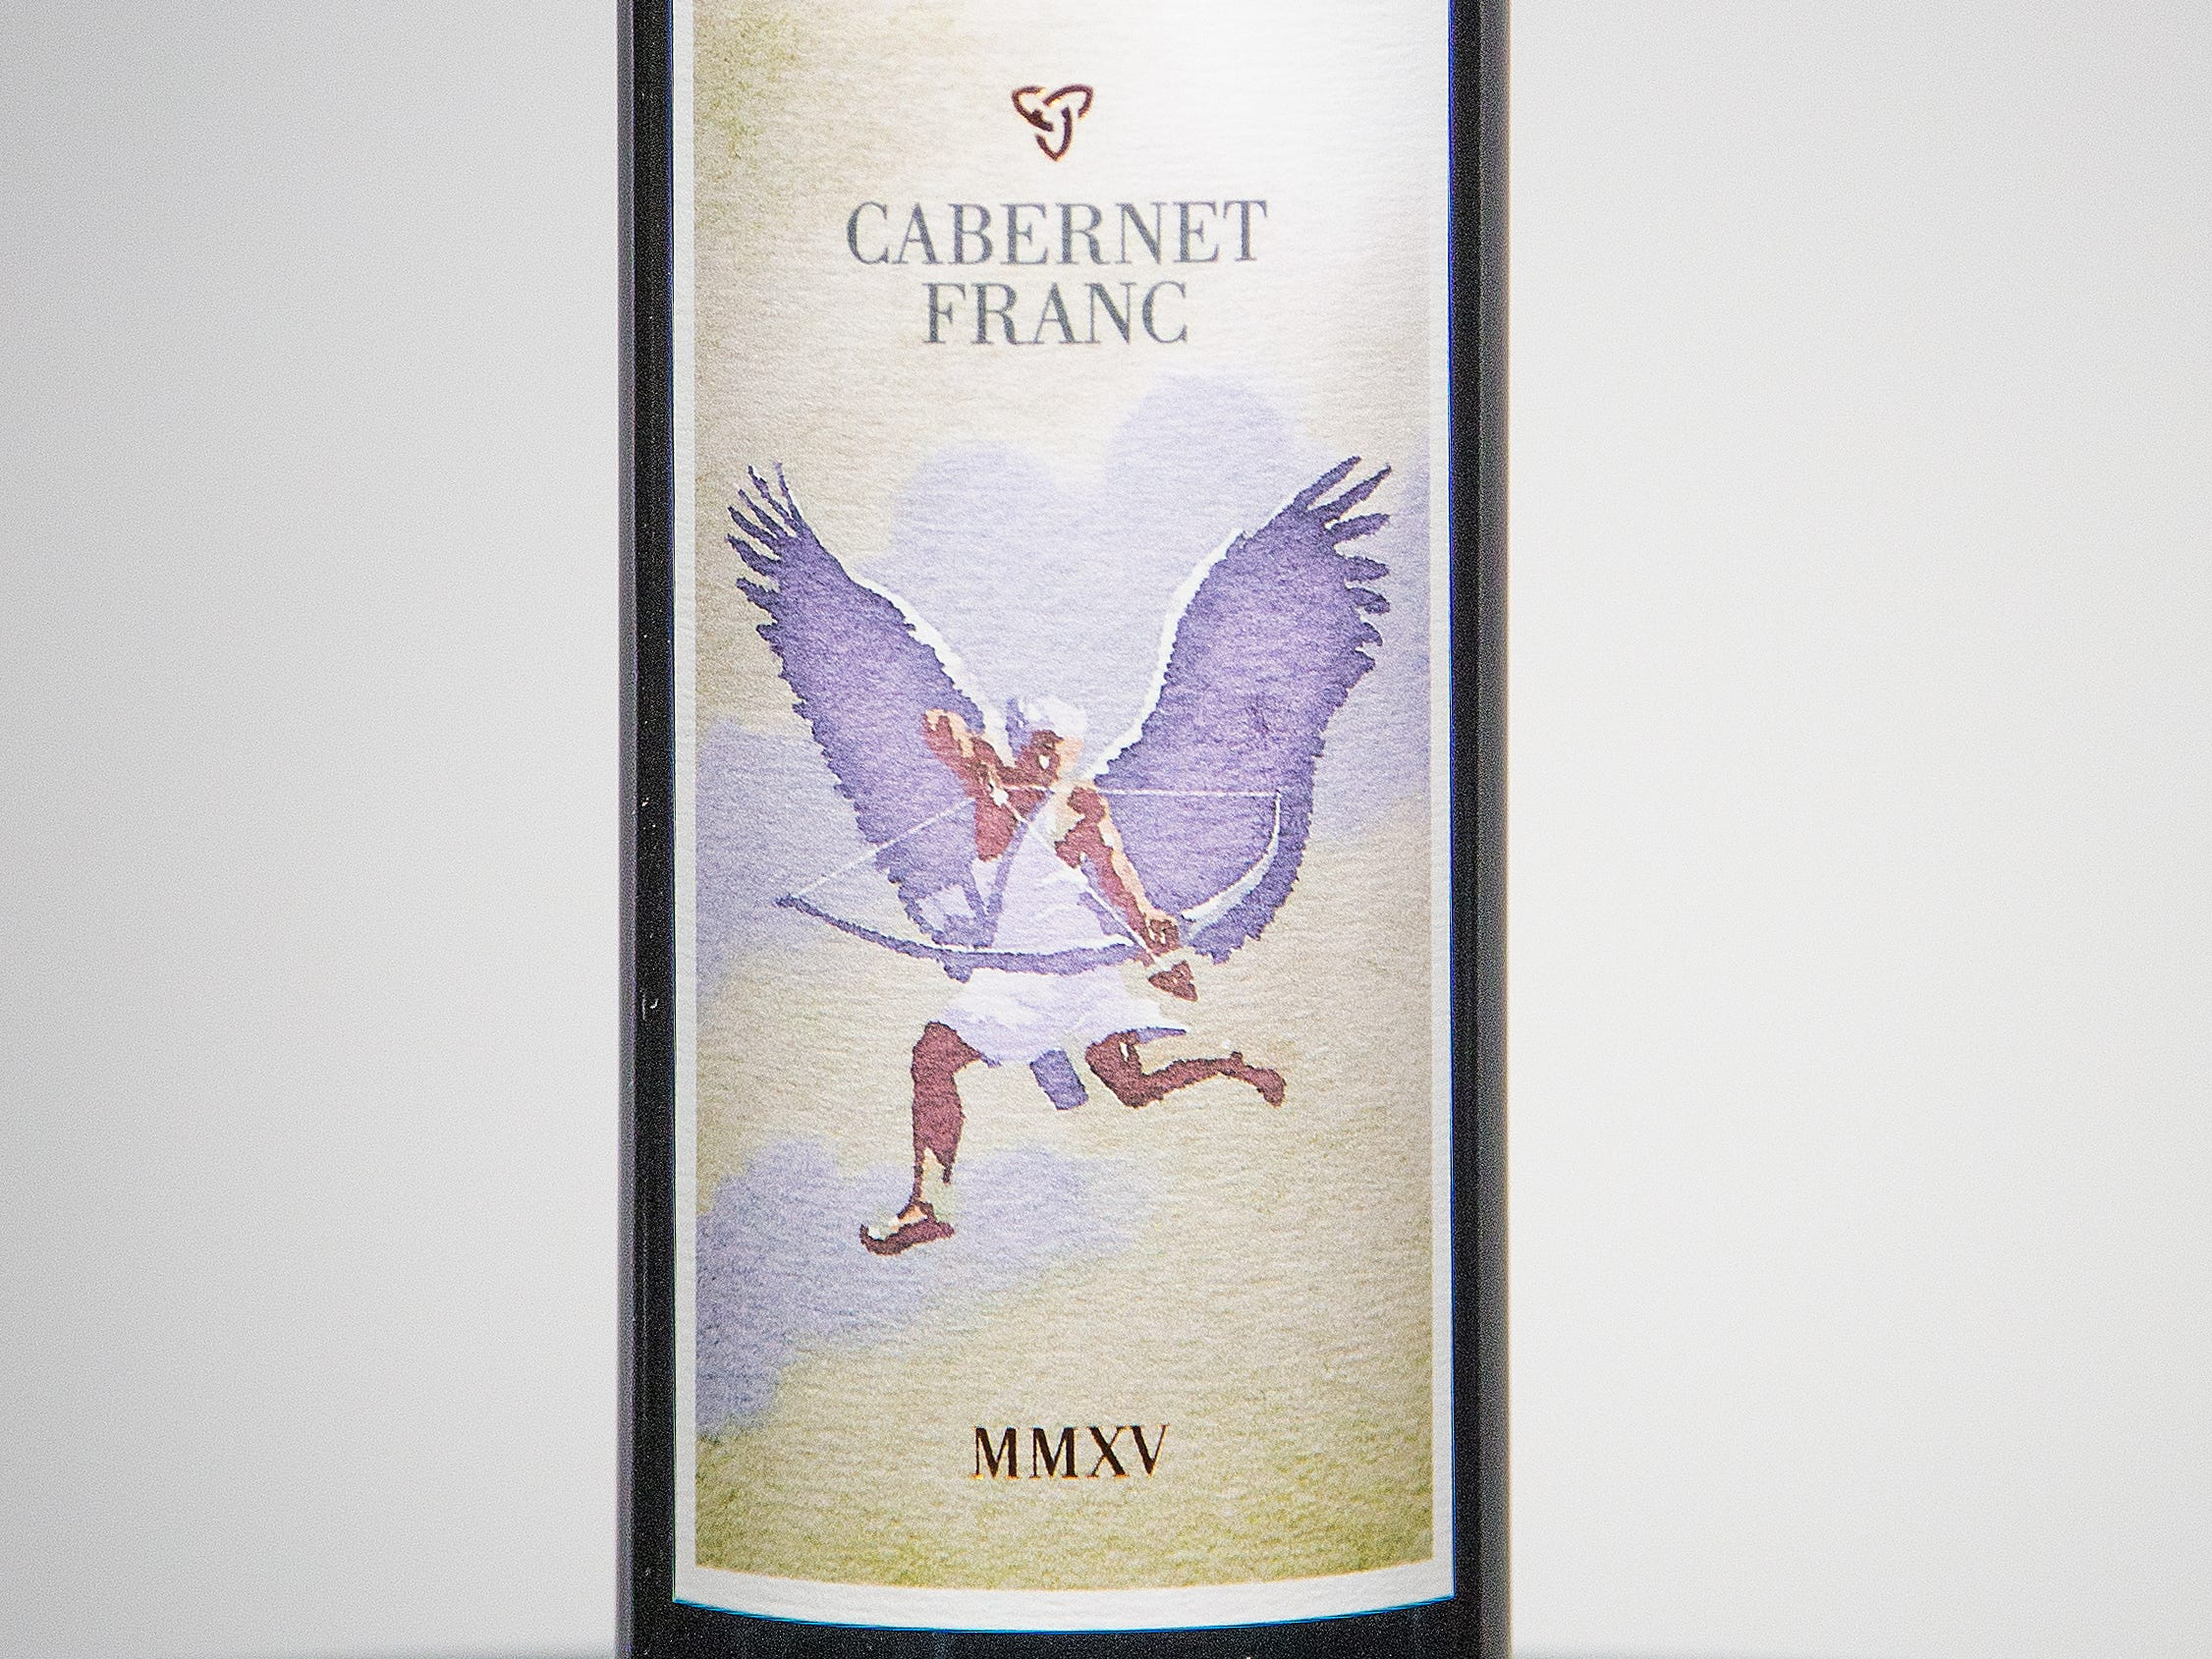 Best Cabernet Franc: Flying Leap Vineyards & Distillery Cabernet Franc 2015.